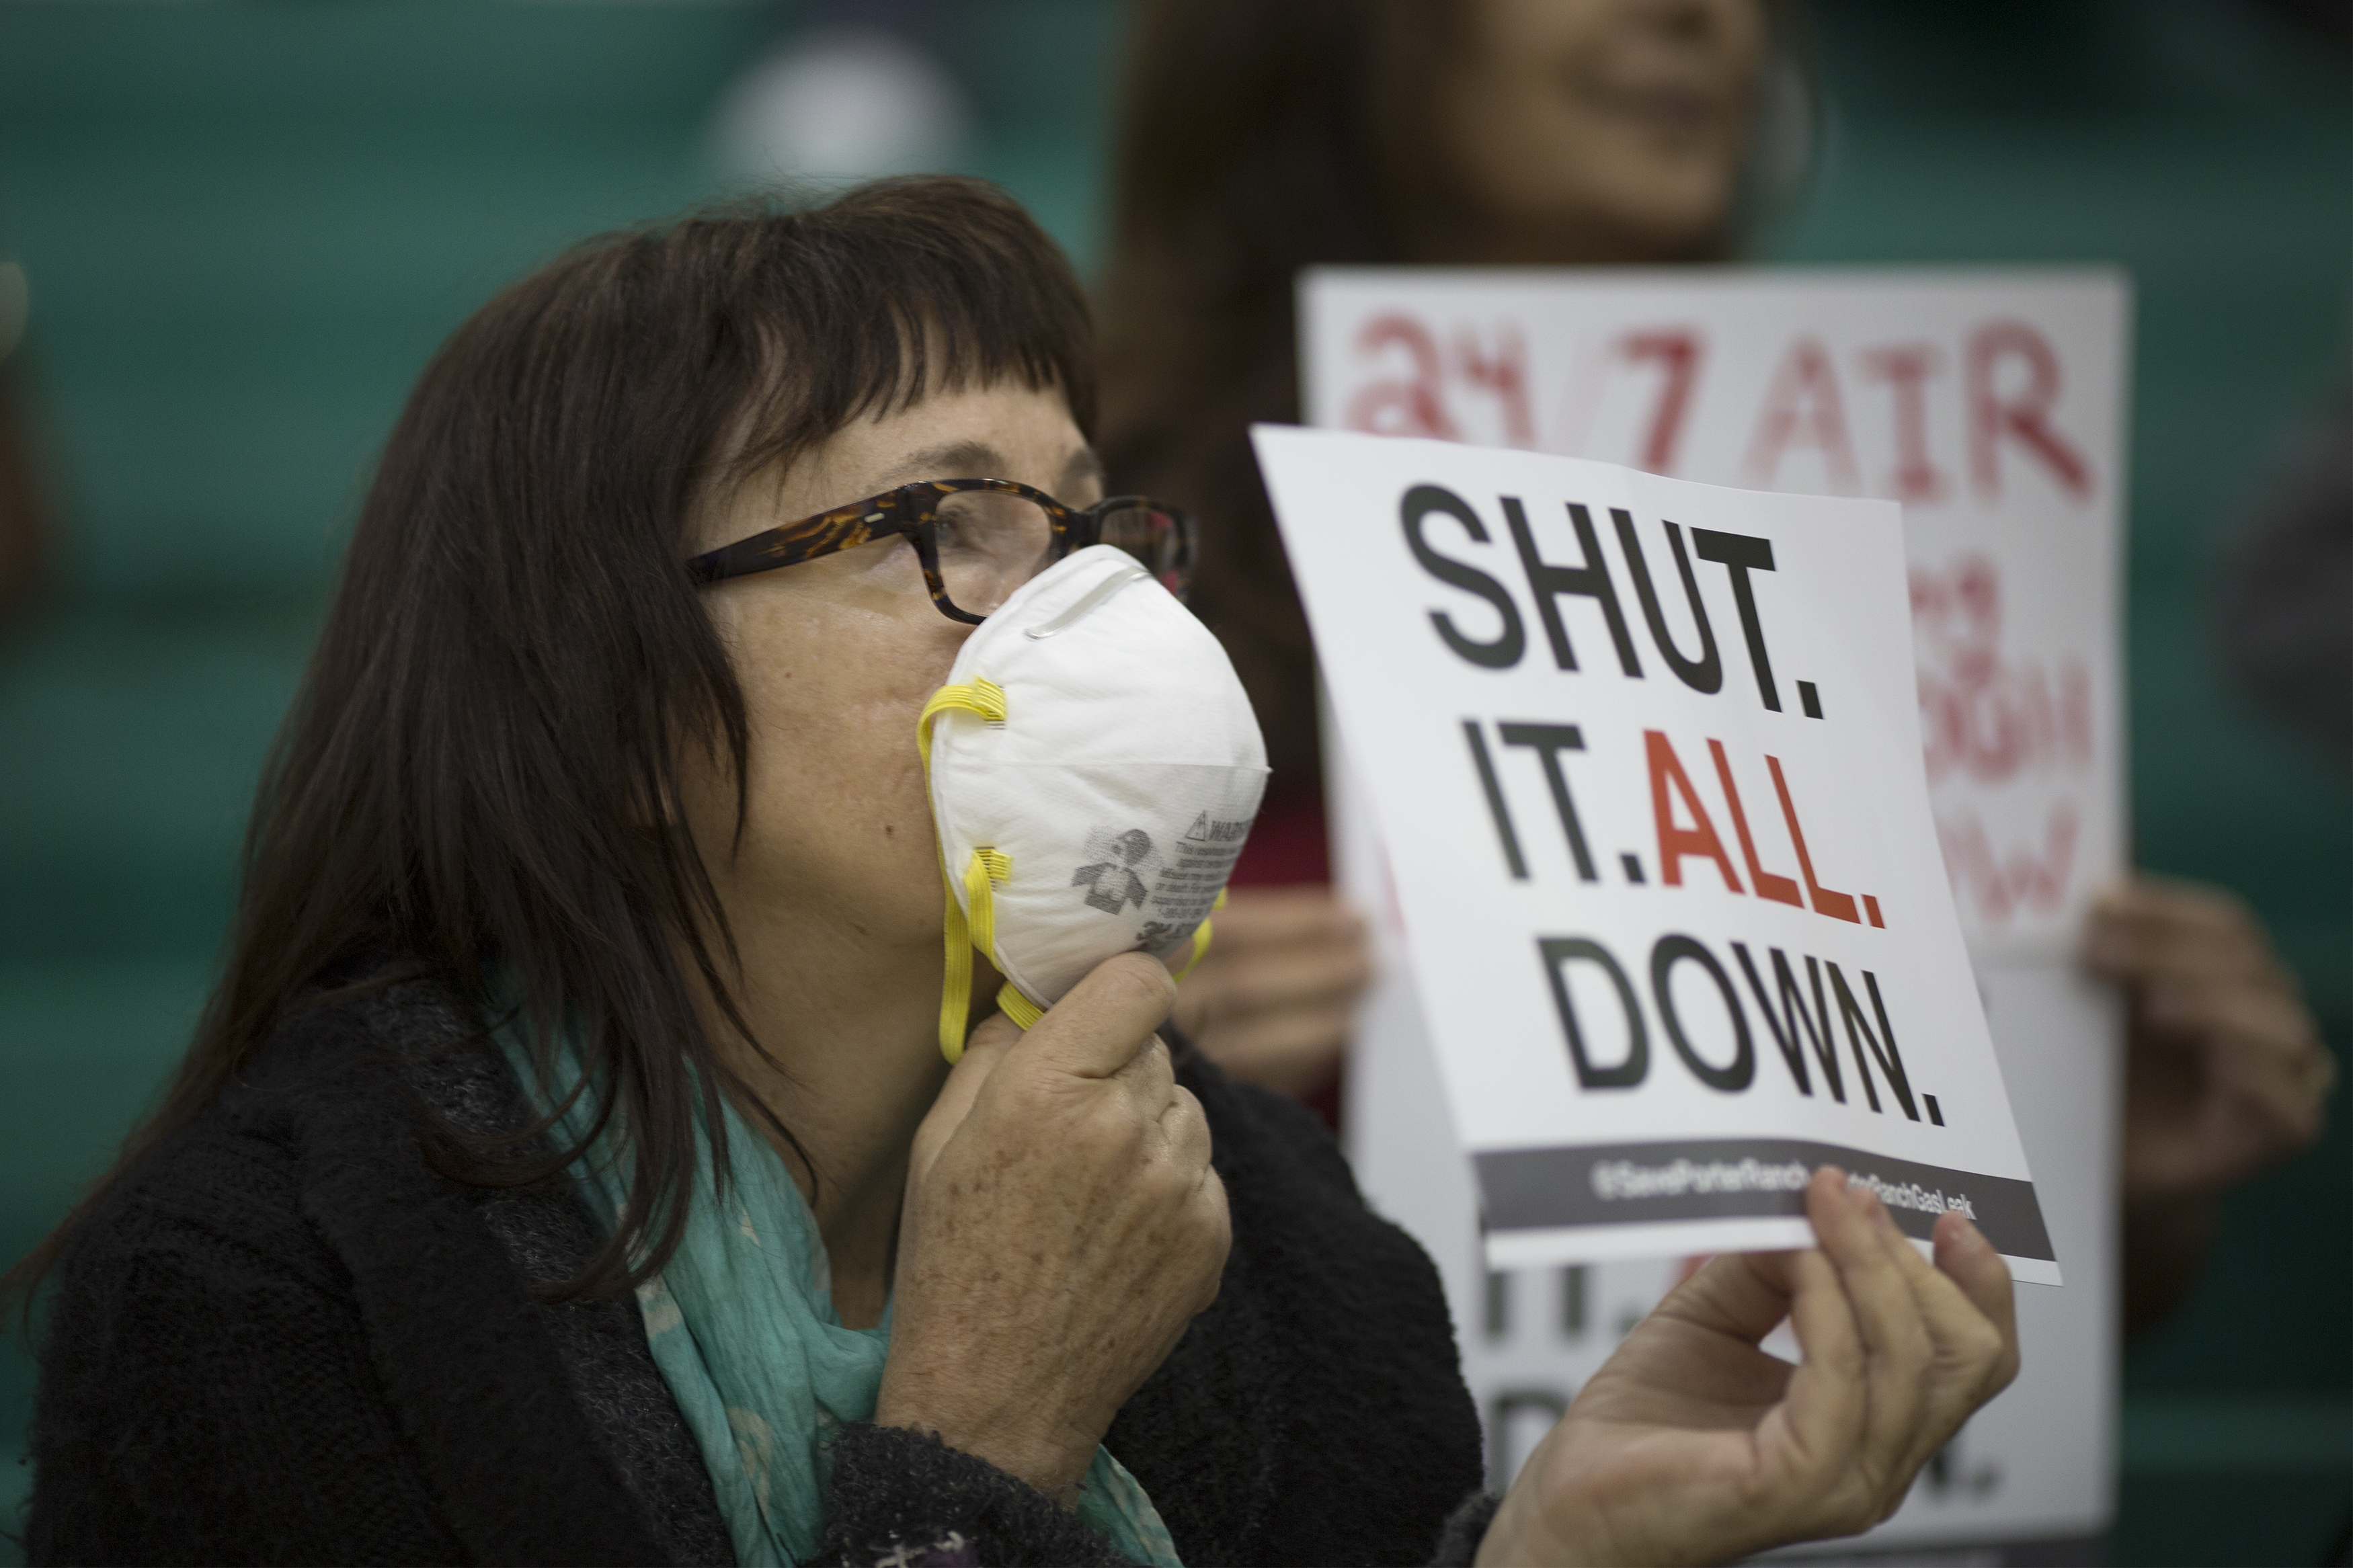 Sue Francis holds a sign while attending a public hearing before the South Coast Air Quality Management District (AQMD) regarding a proposed stipulated abatement order to stop a nearby massive natural gas leak, on January 16, 2016 in Granada Hills, near Porter Ranch, California.